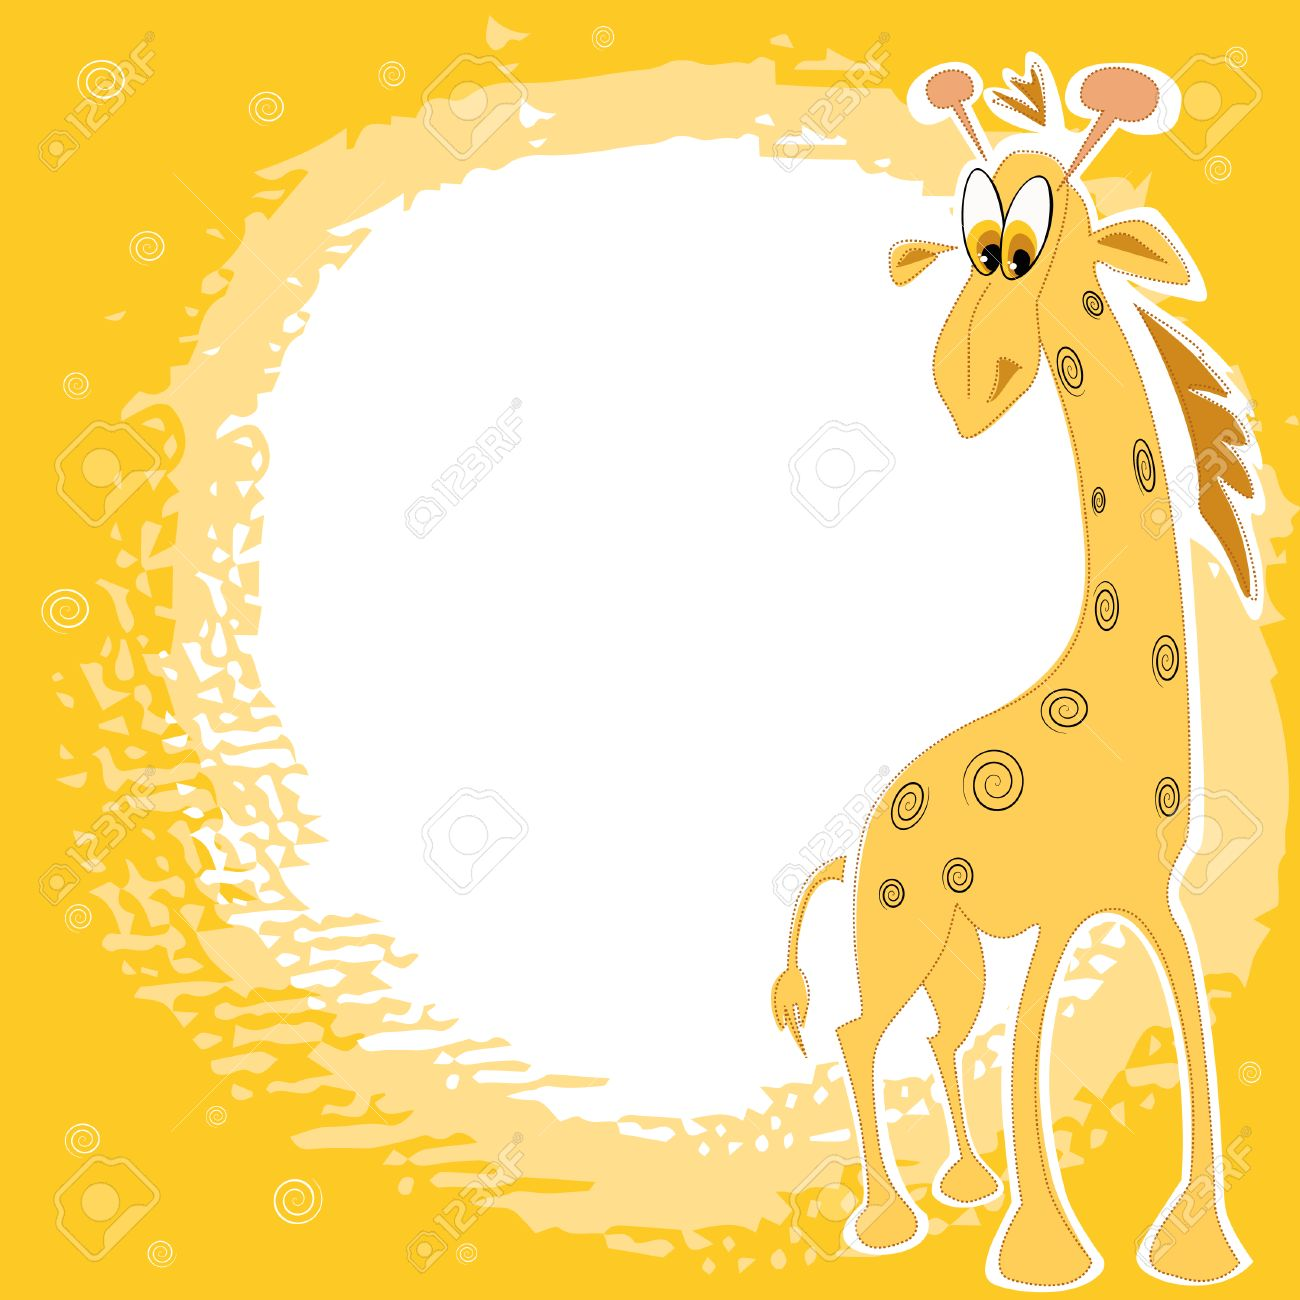 Vector Card Design With Cute Giraffe On A Spotted Yellow Background ...